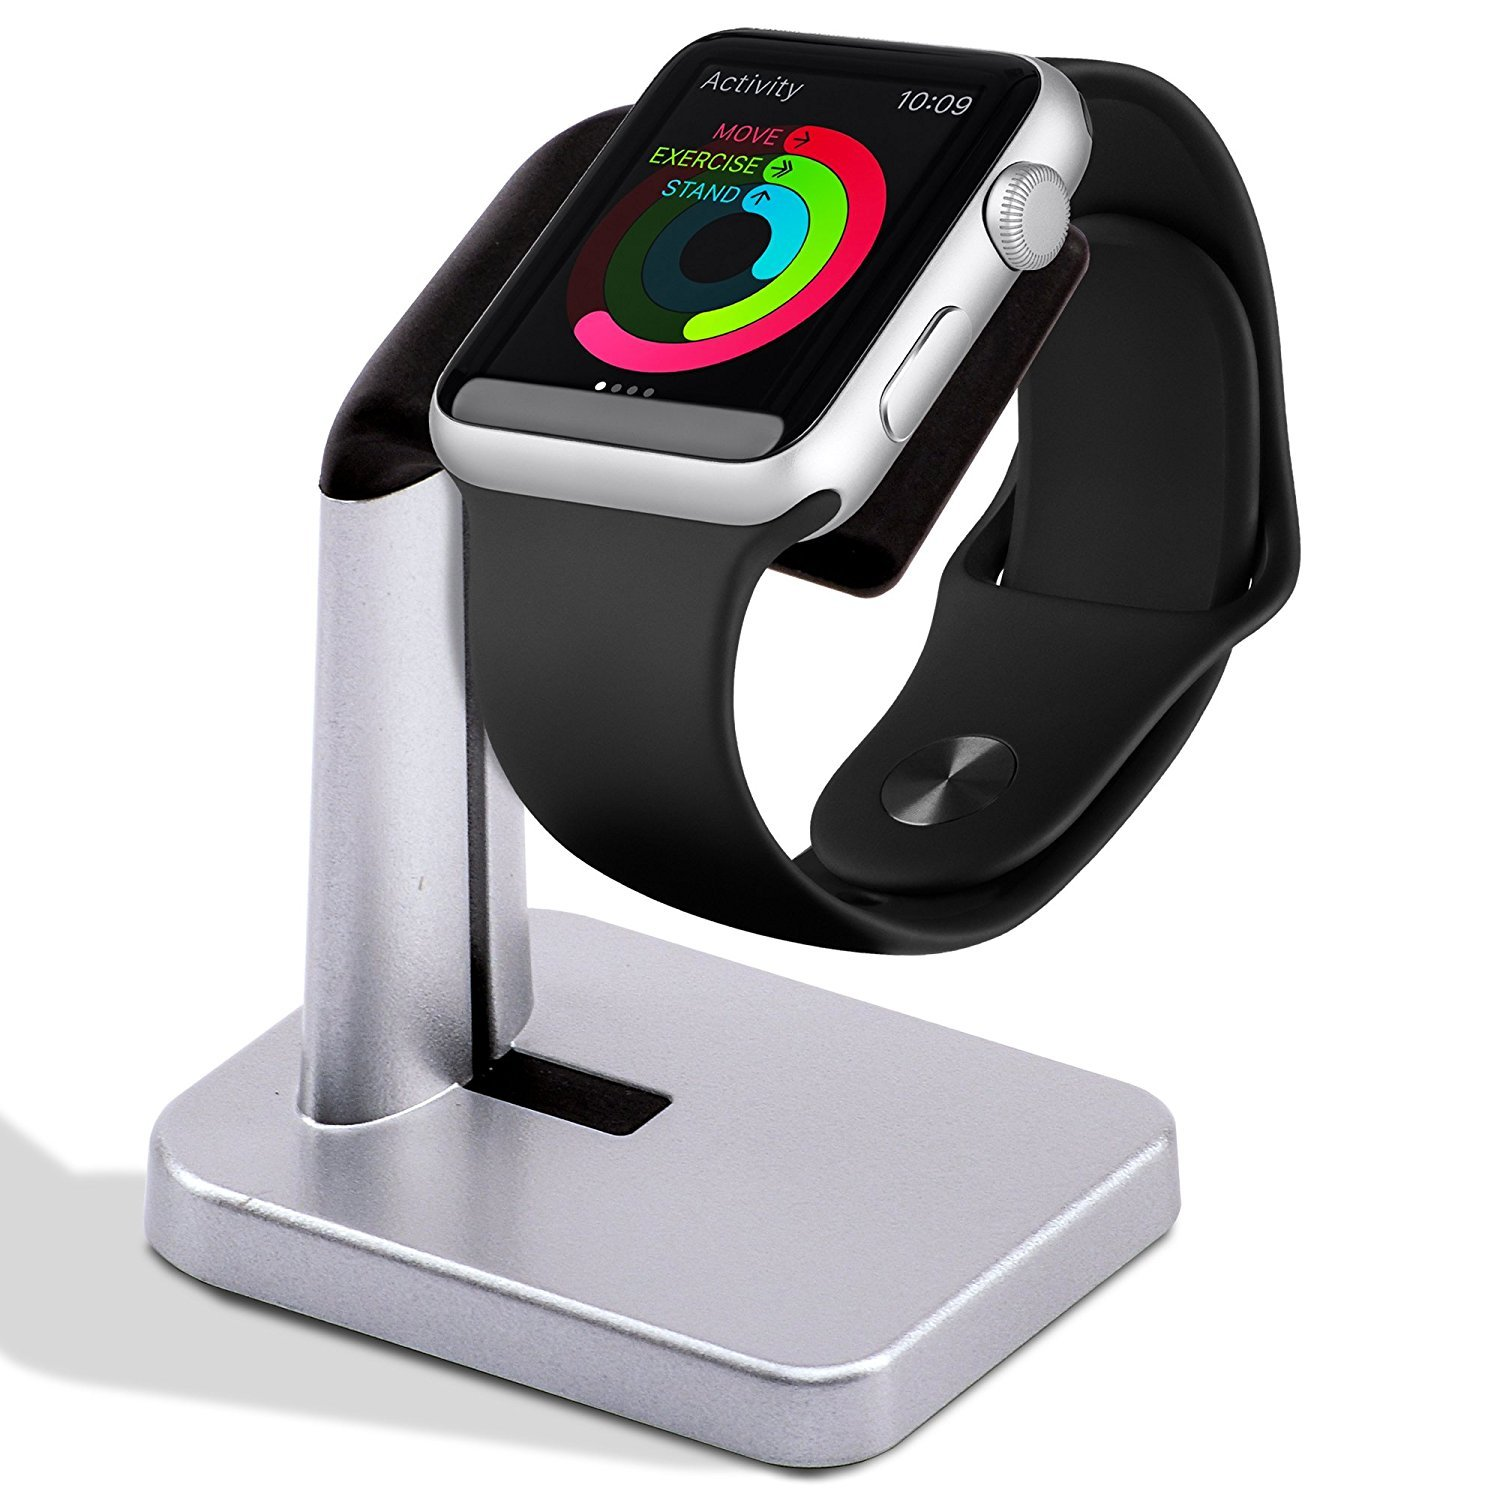 A'O Watch Charger Station Compatible with Apple Watch Charging Dock,iWatch holder stand for smart watches series 38/42mm. Silver black color station, cable not included. Antislip Platform. by A'O (Image #1)